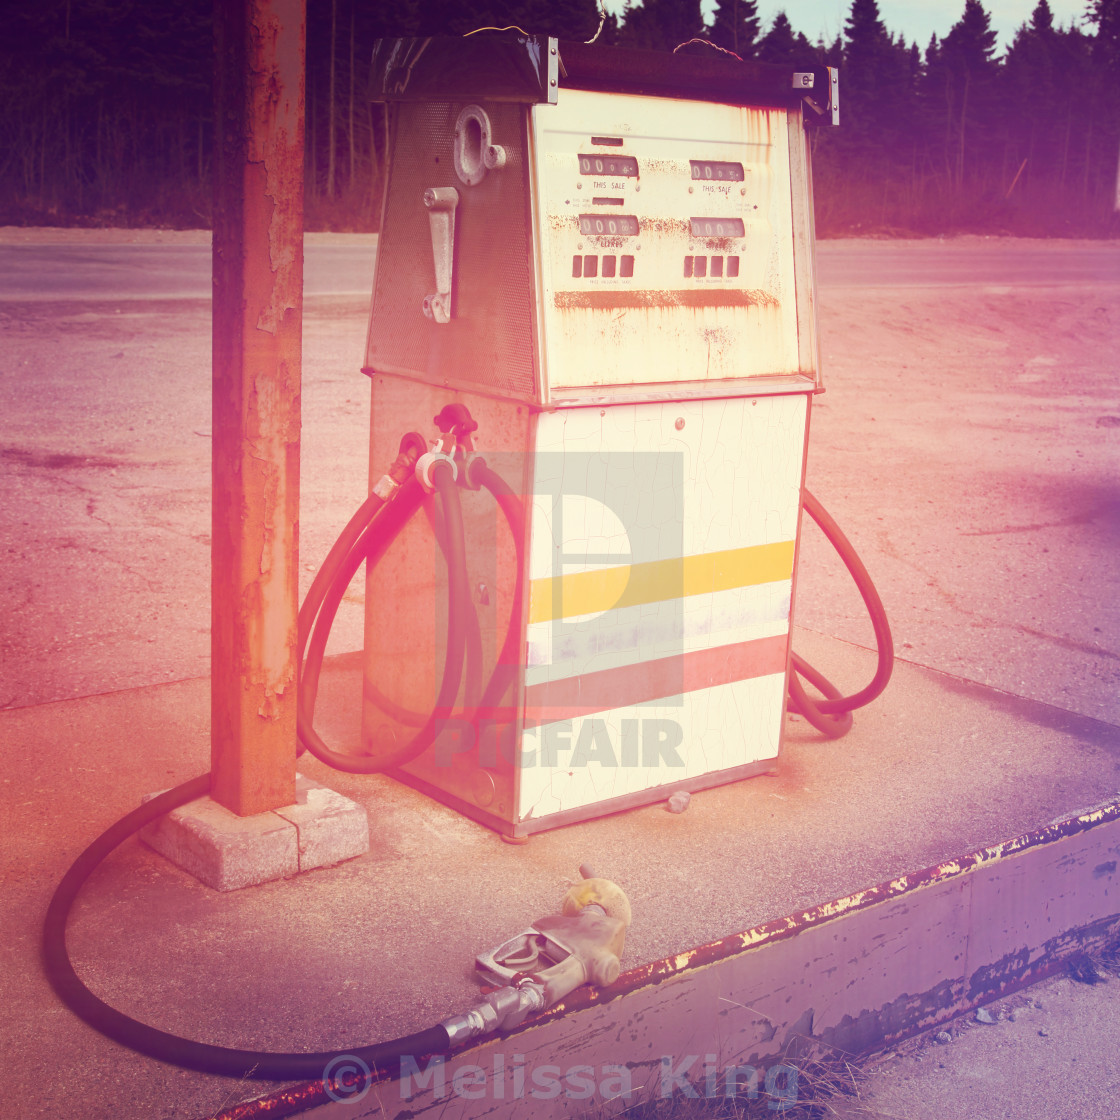 Old gas pump - With Instagram effect - License, download or